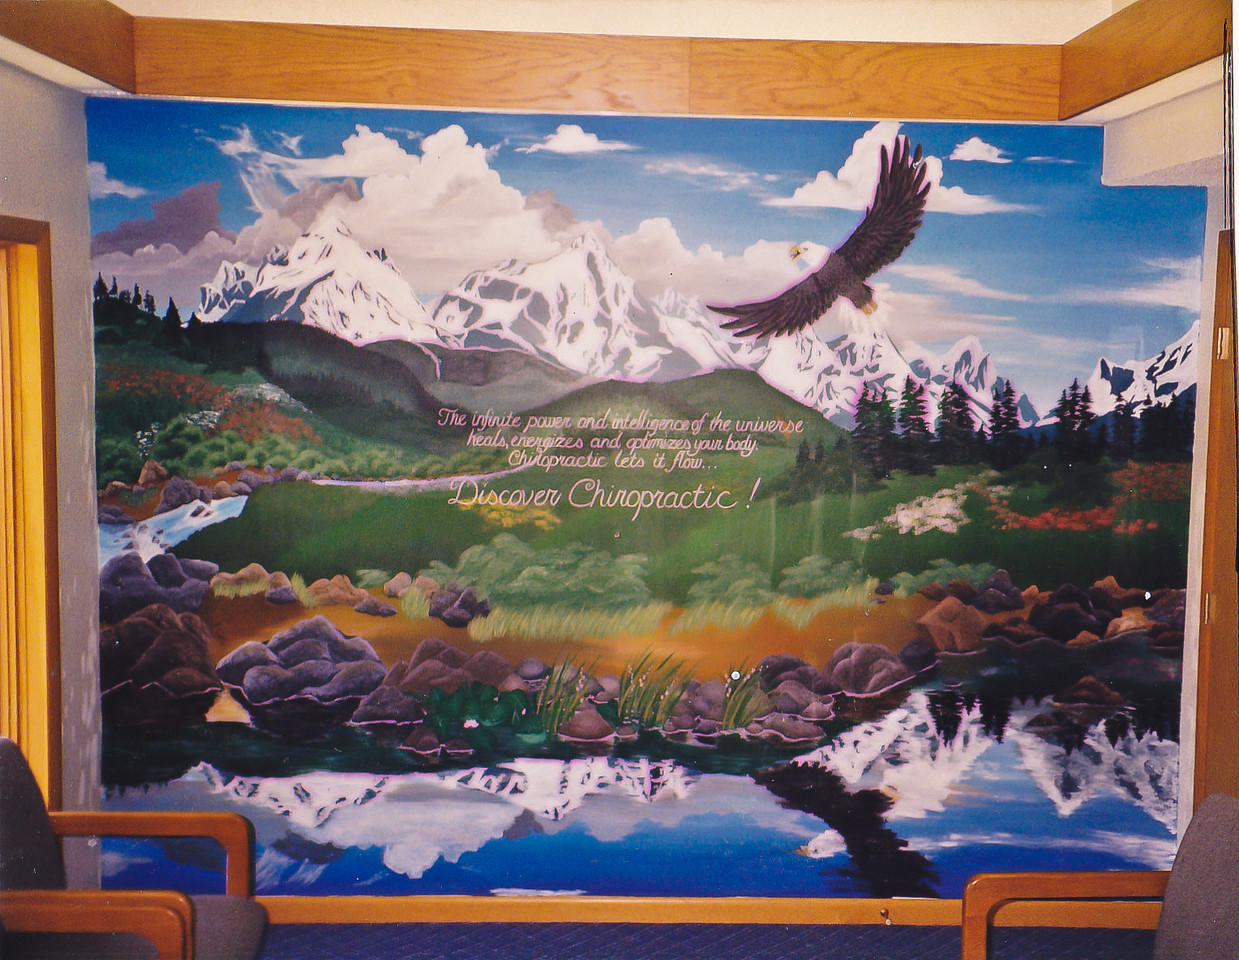 Contact: April Bensch<br /> Phone: 843-997-9917<br /> E-Mail: aprilbensch@sc.rr.com<br /> Mural for O'Neil Chiropractic<br /> Call for mural pricing